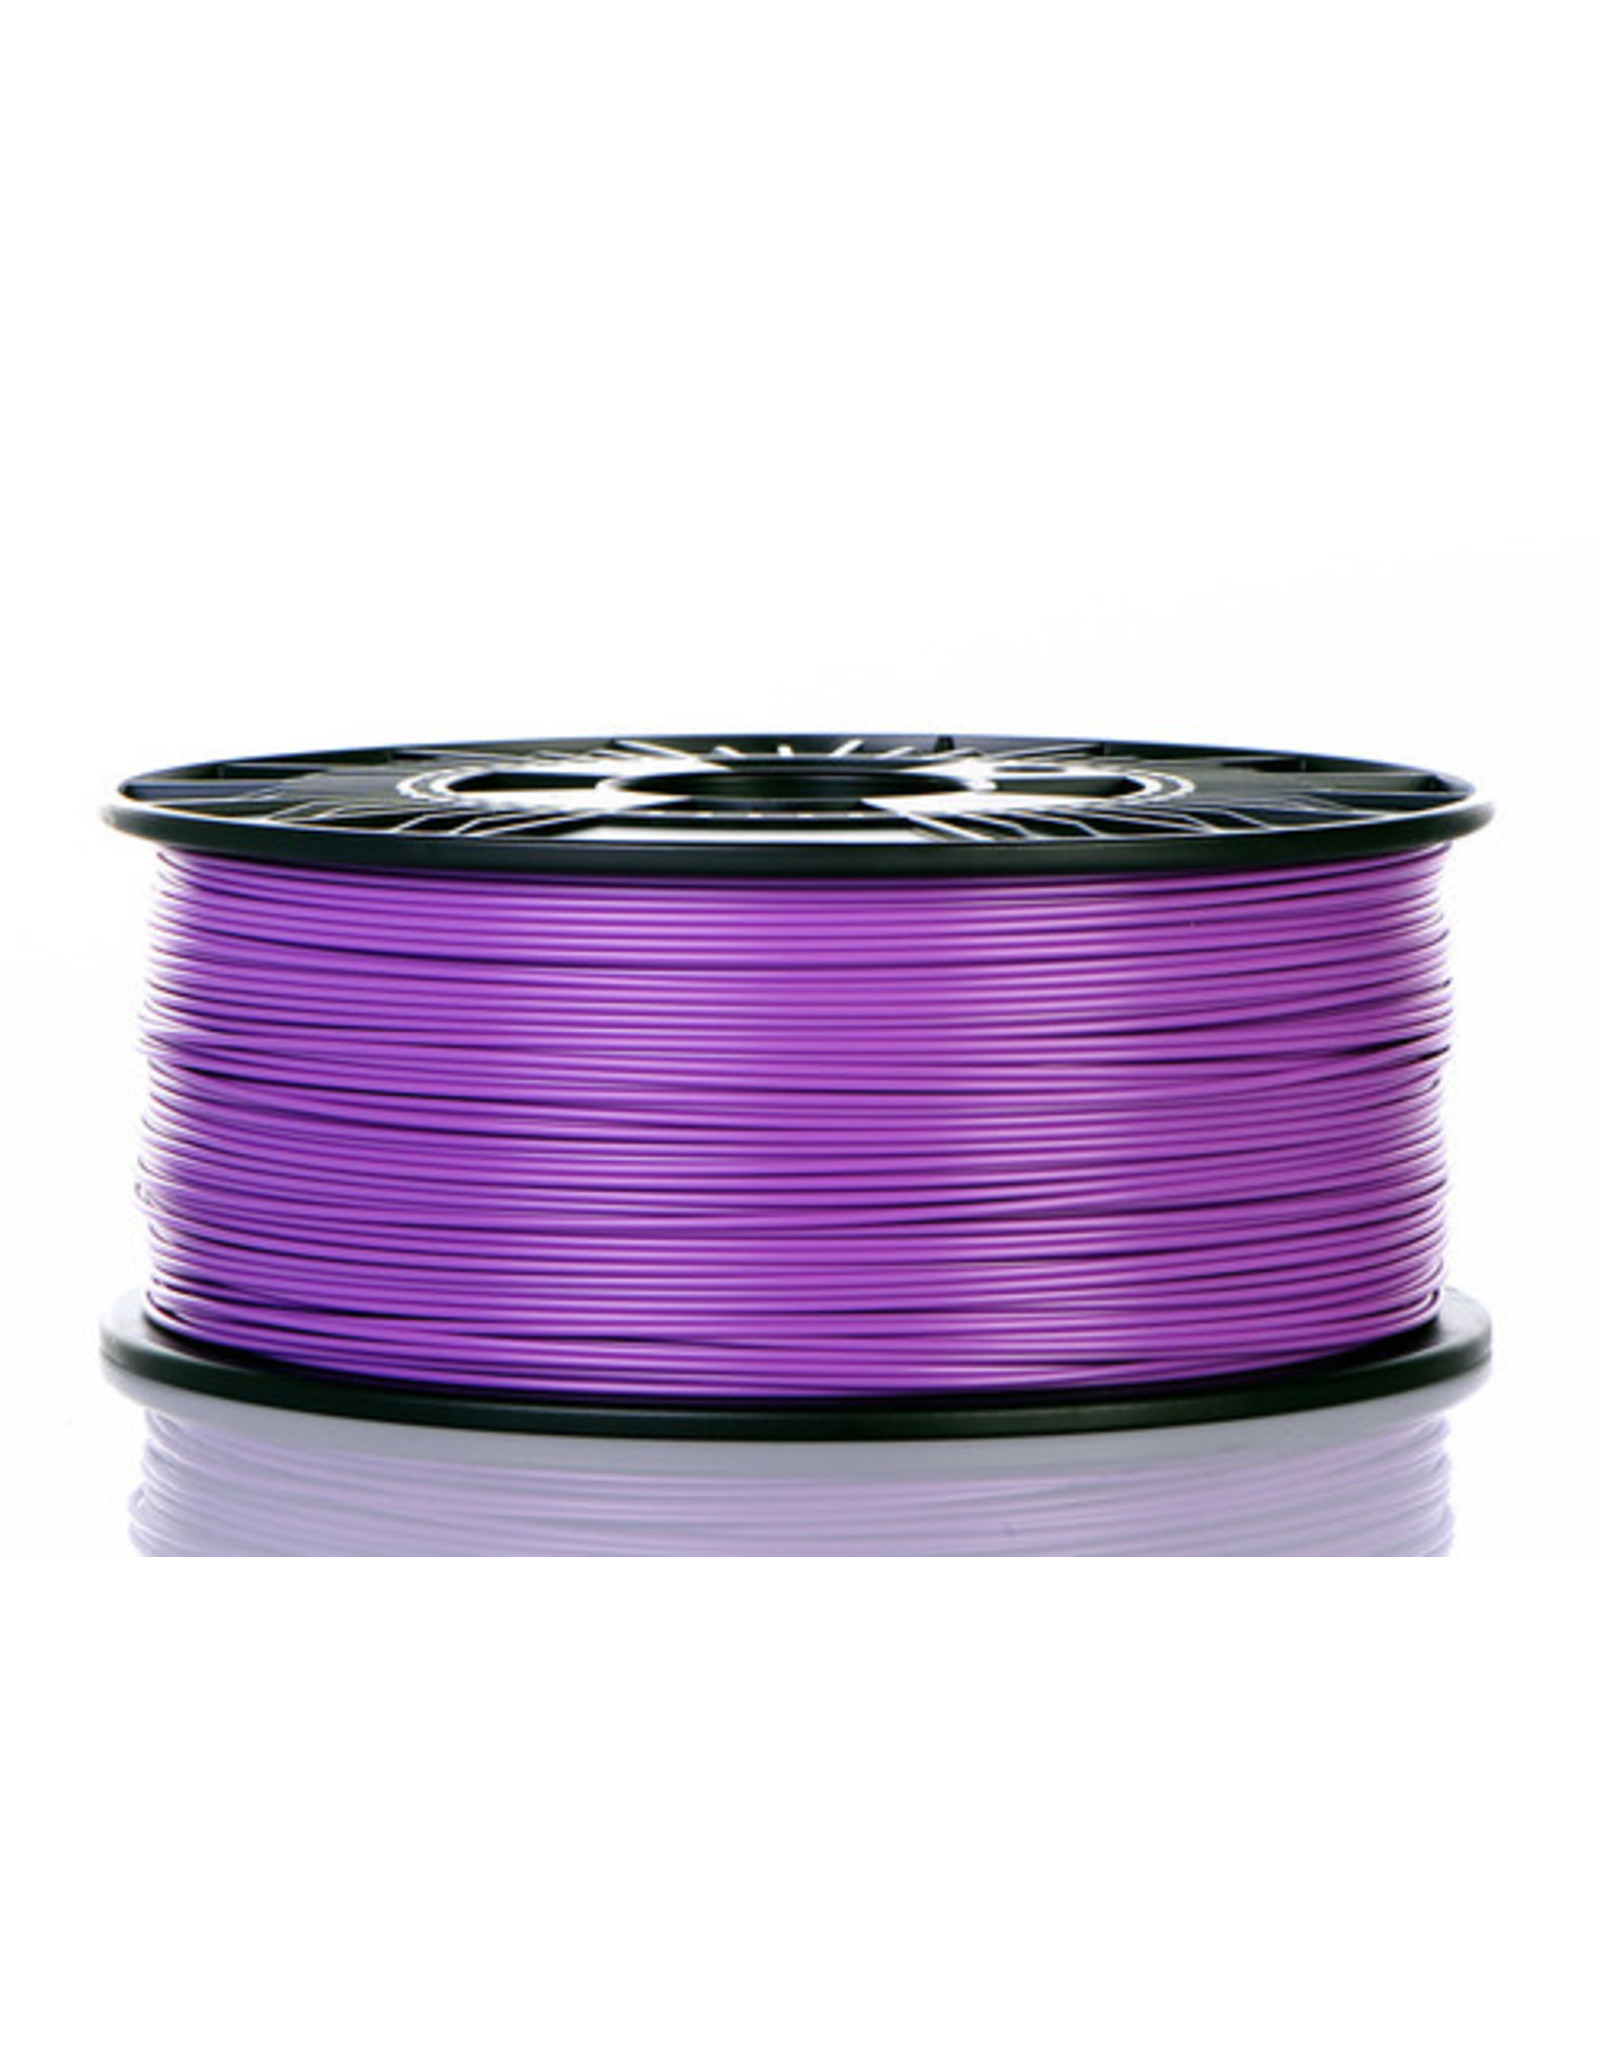 Material4Print PLA 1.75mm Lilac 1kg